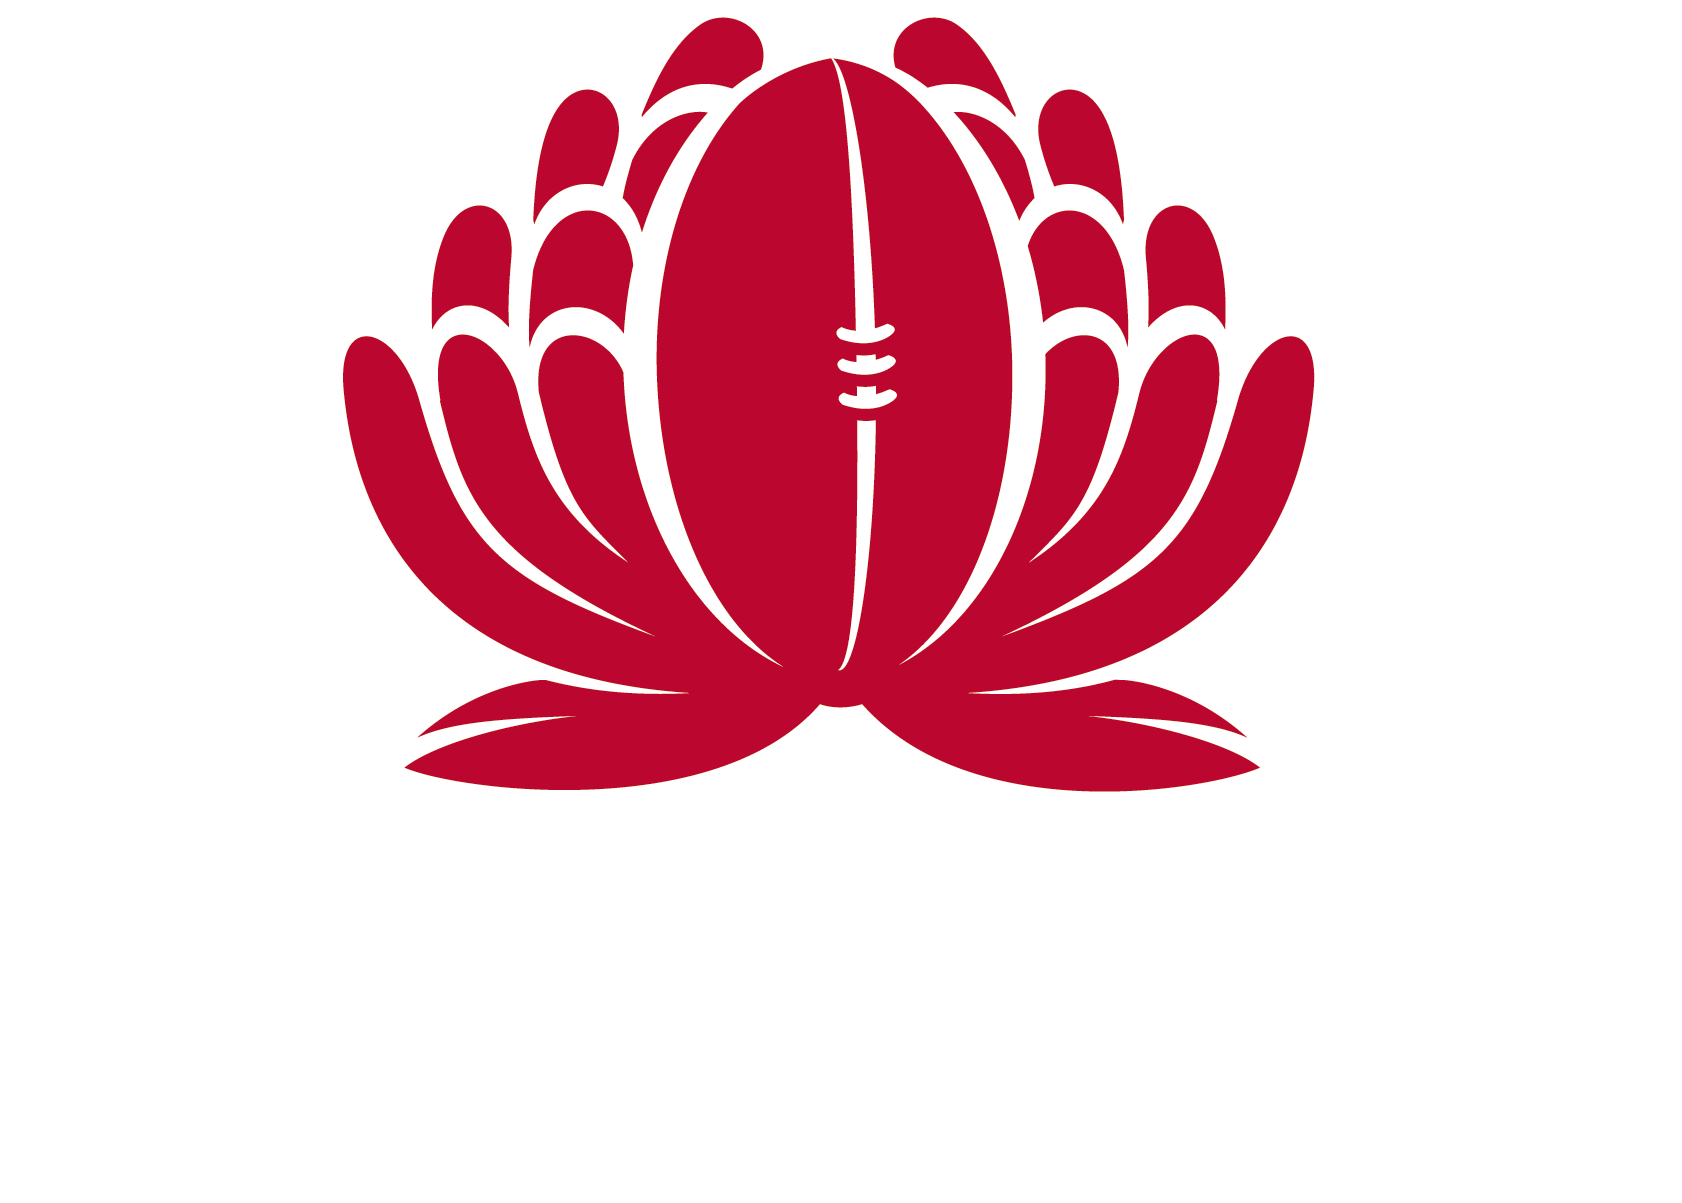 NSWRU-Waratahs-Stacked-Outline-White.png